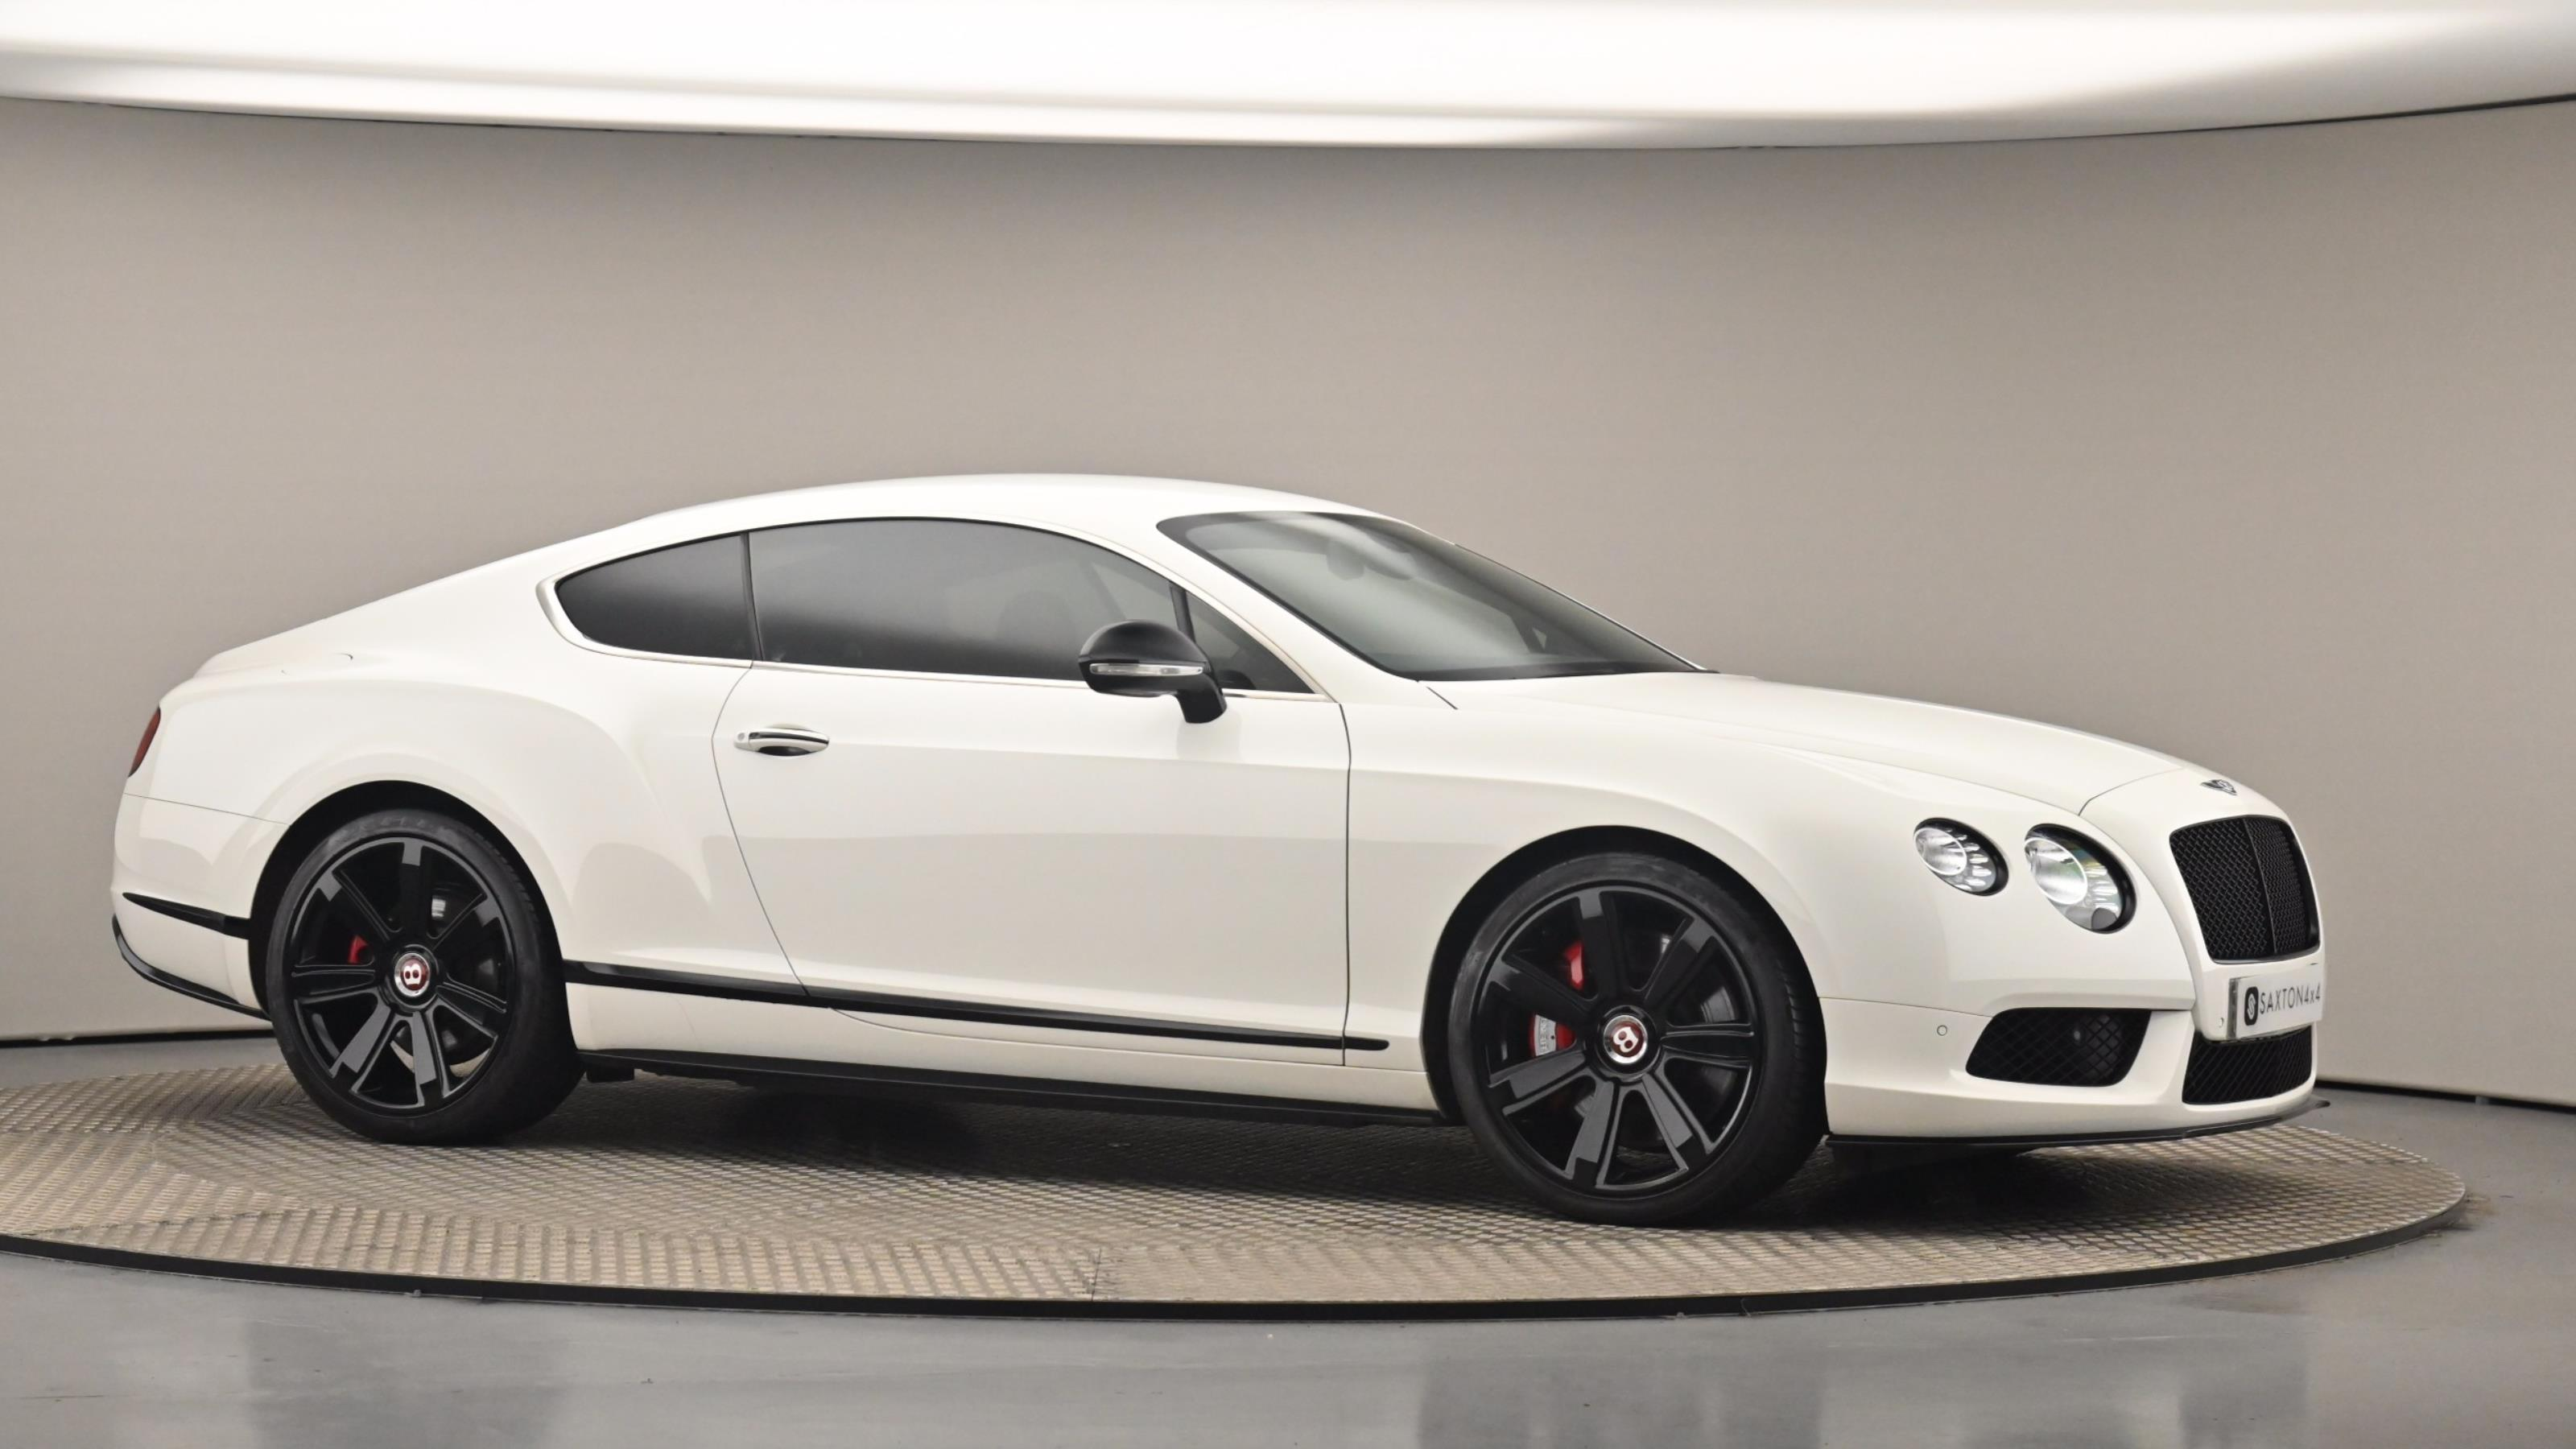 Used 2015 Bentley CONTINENTAL GT 4.0 V8 S 2dr Auto White at Saxton4x4